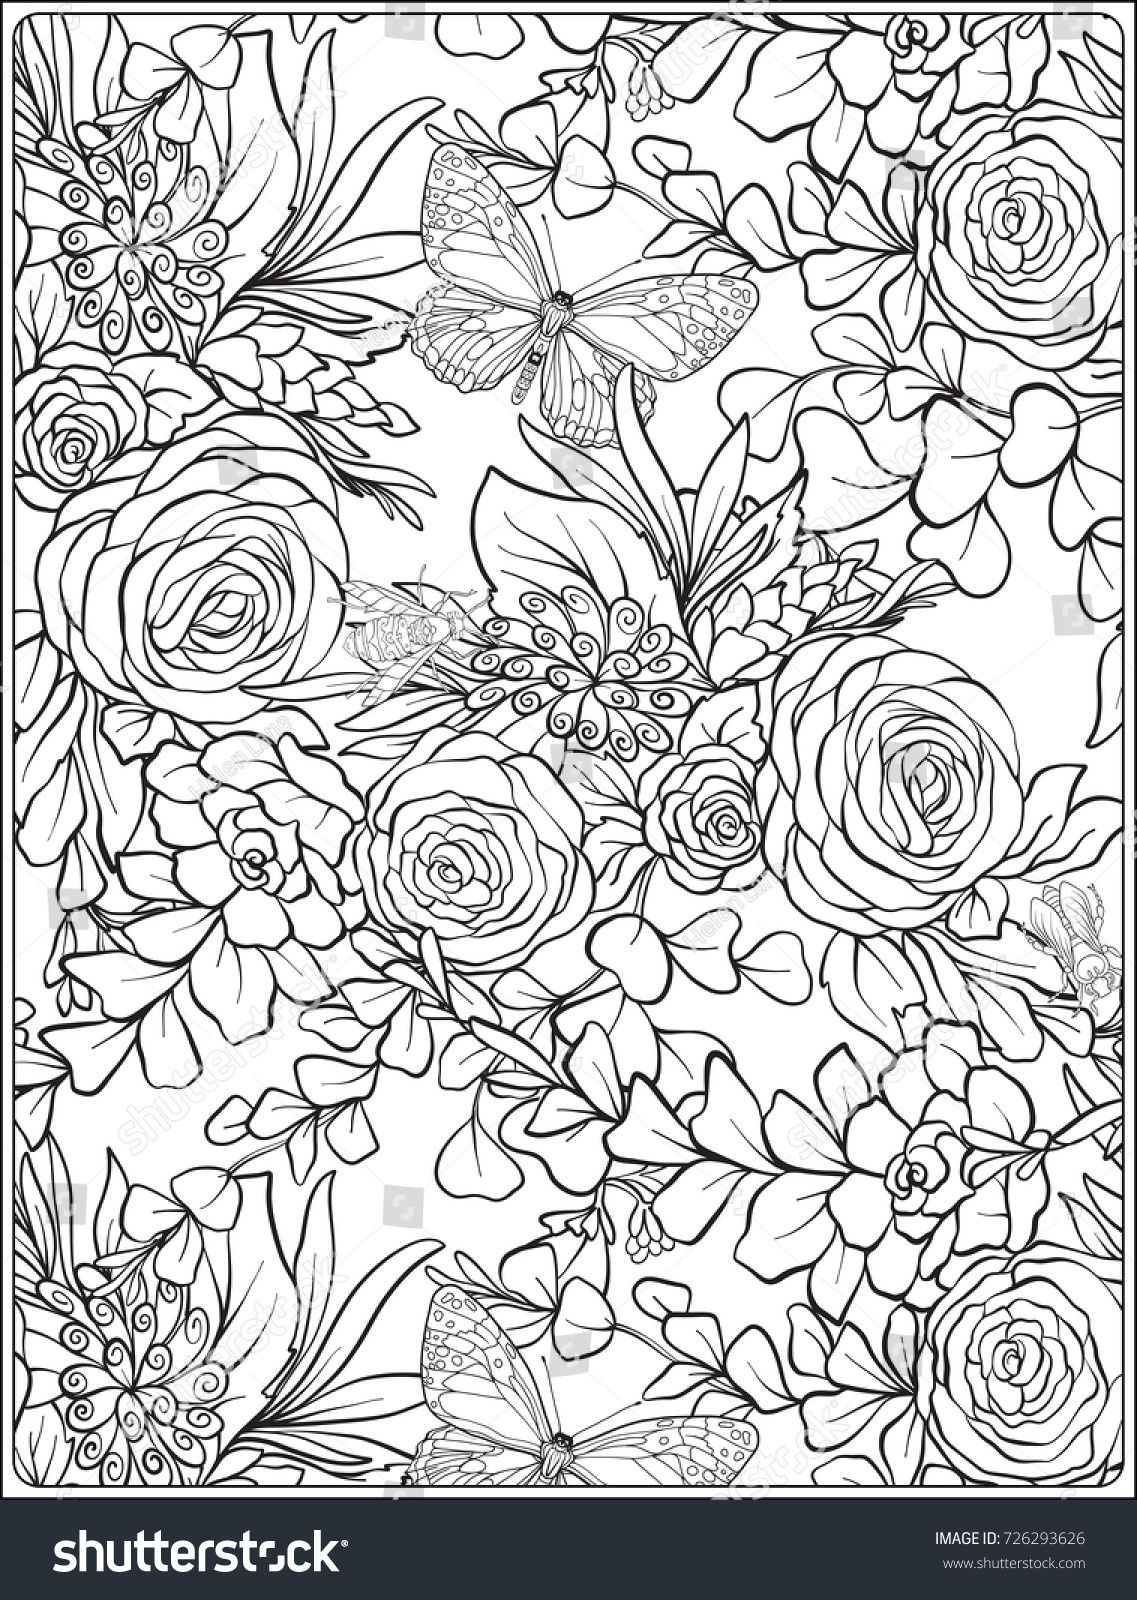 Pin On Coloring Pages [ 1600 x 1137 Pixel ]